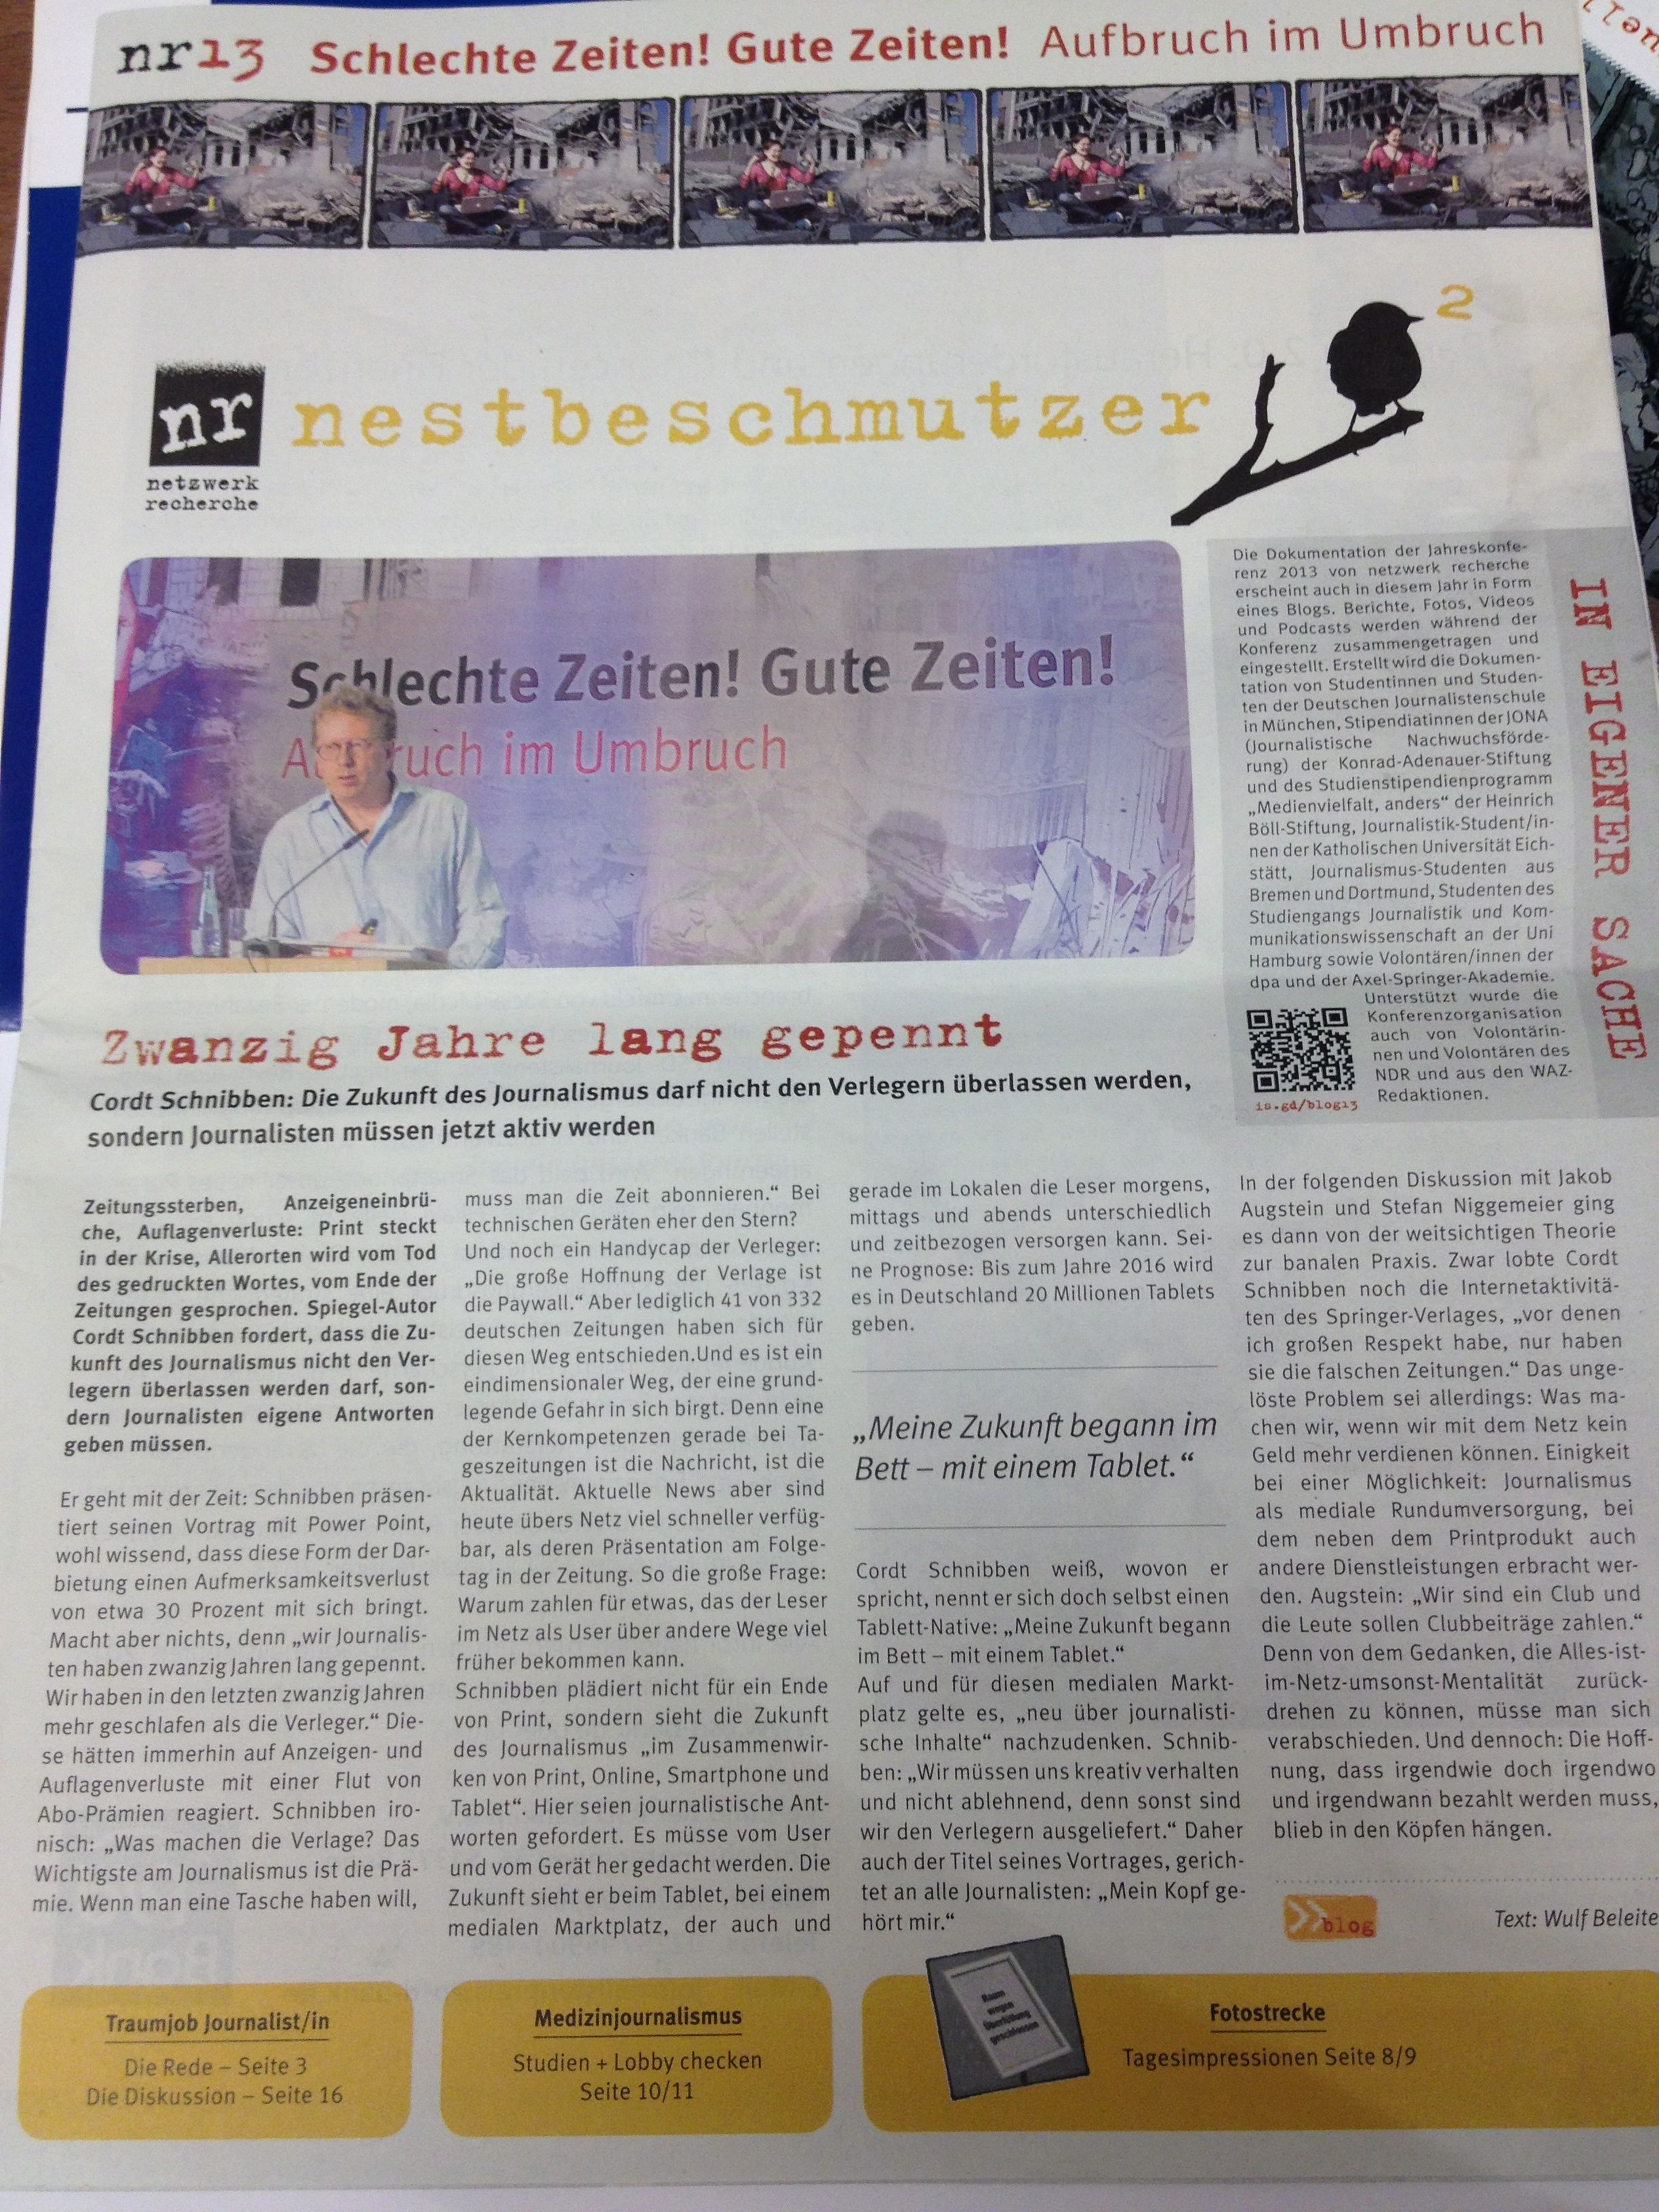 Journalistenschüler covern #nr13